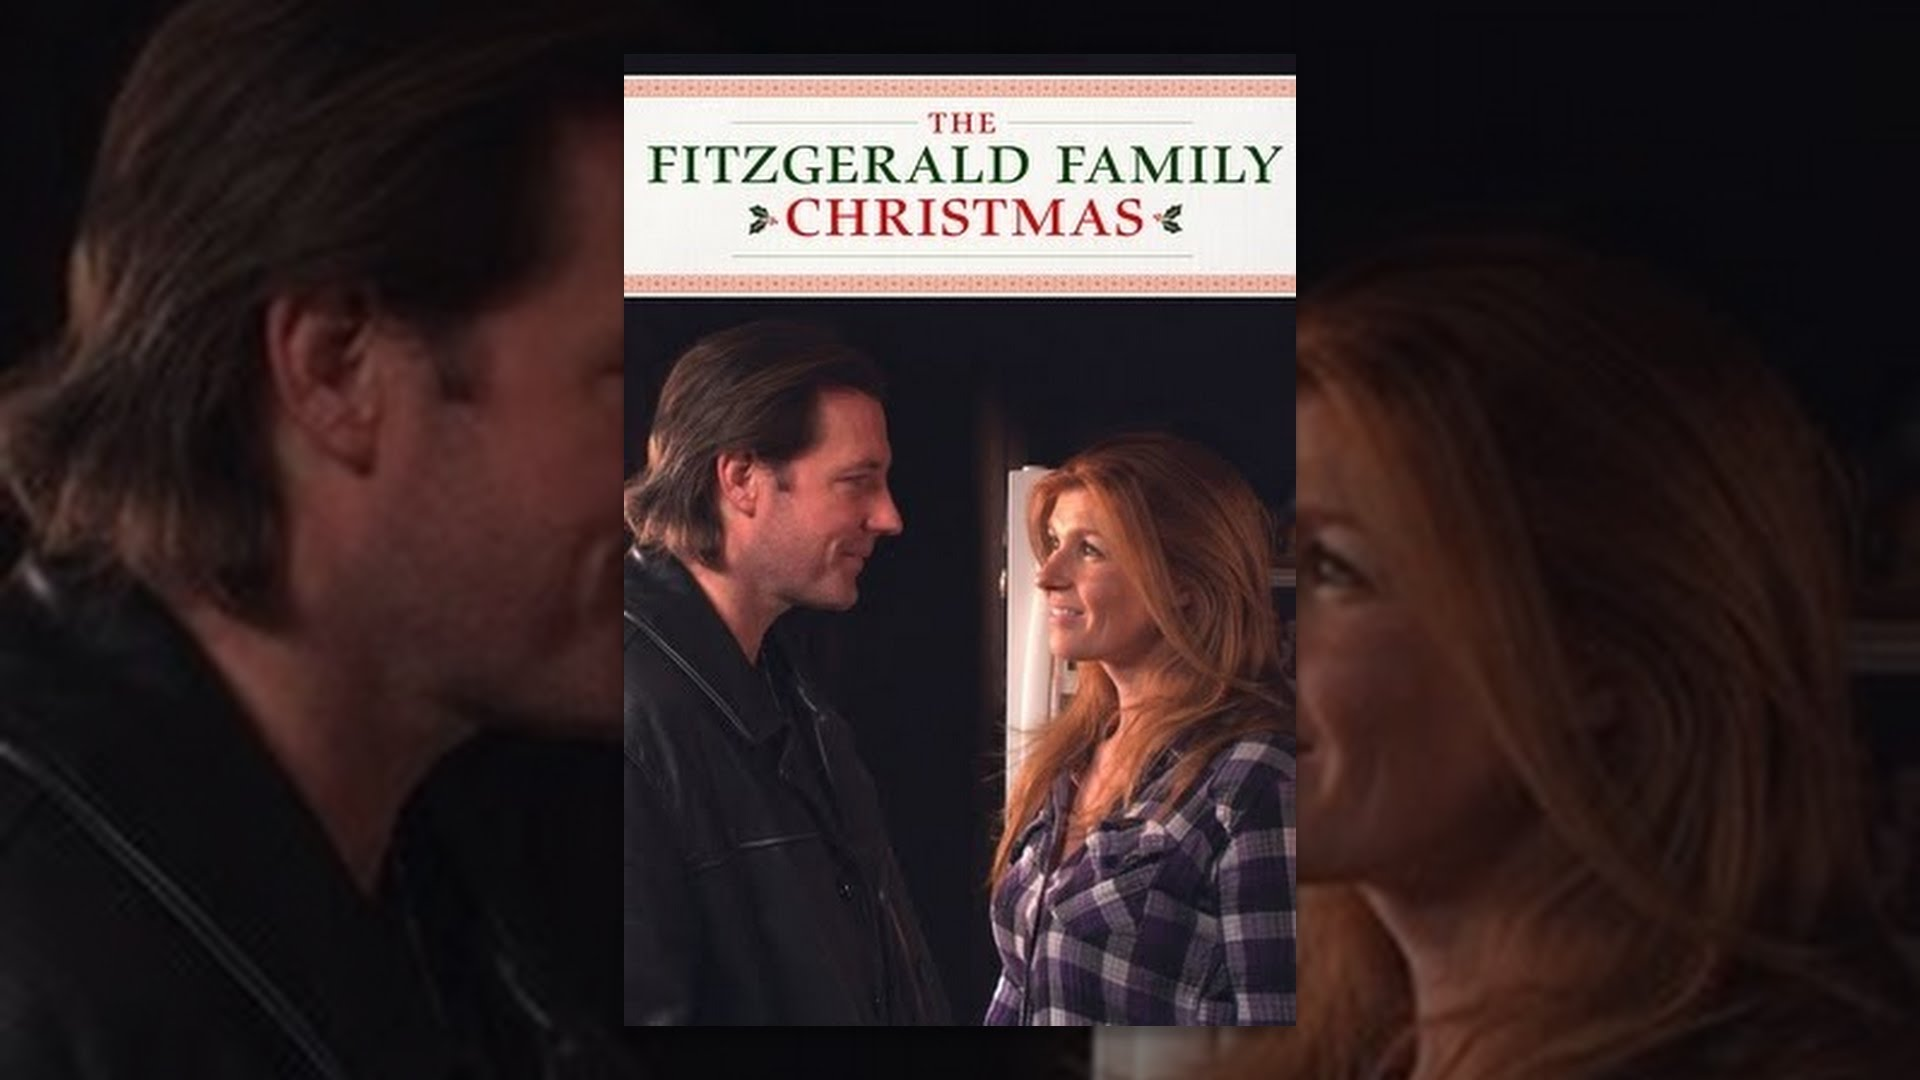 the fitzgerald family christmas - Fitzgerald Christmas